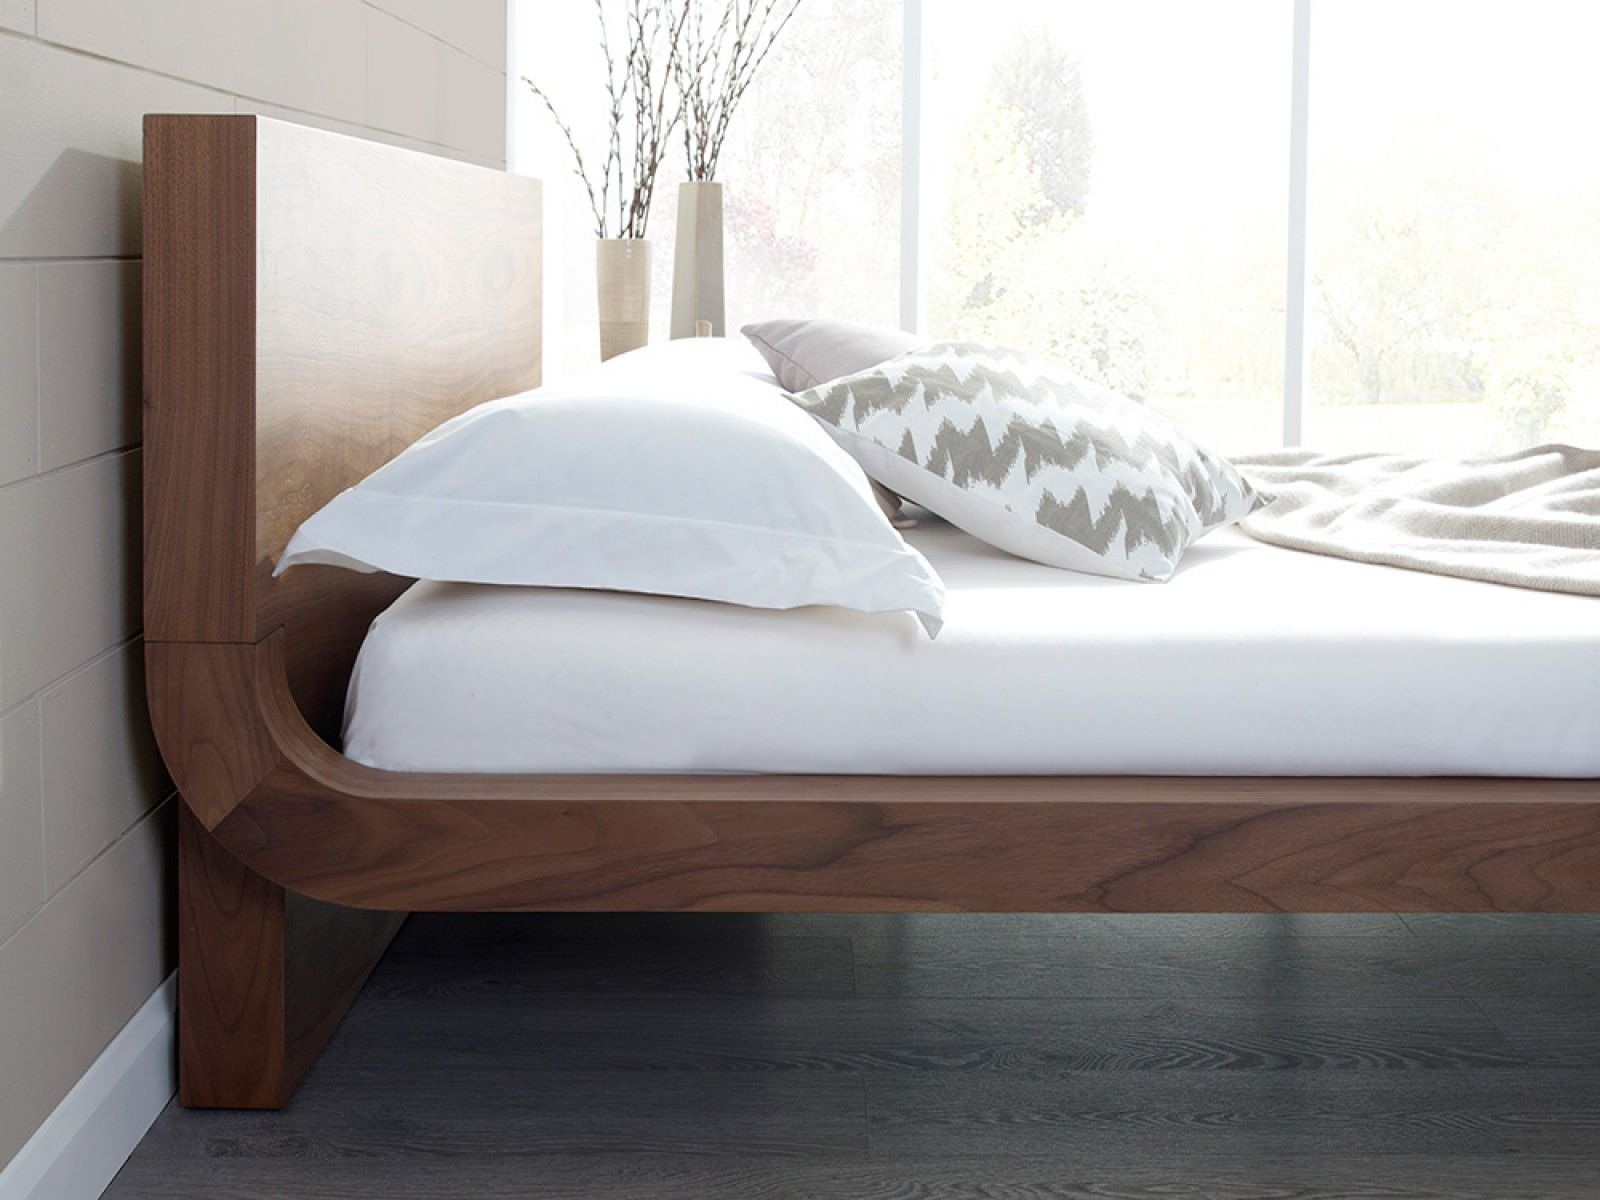 Roma Natural Walnut Bed | Bedroom bed design, Contemporary ...